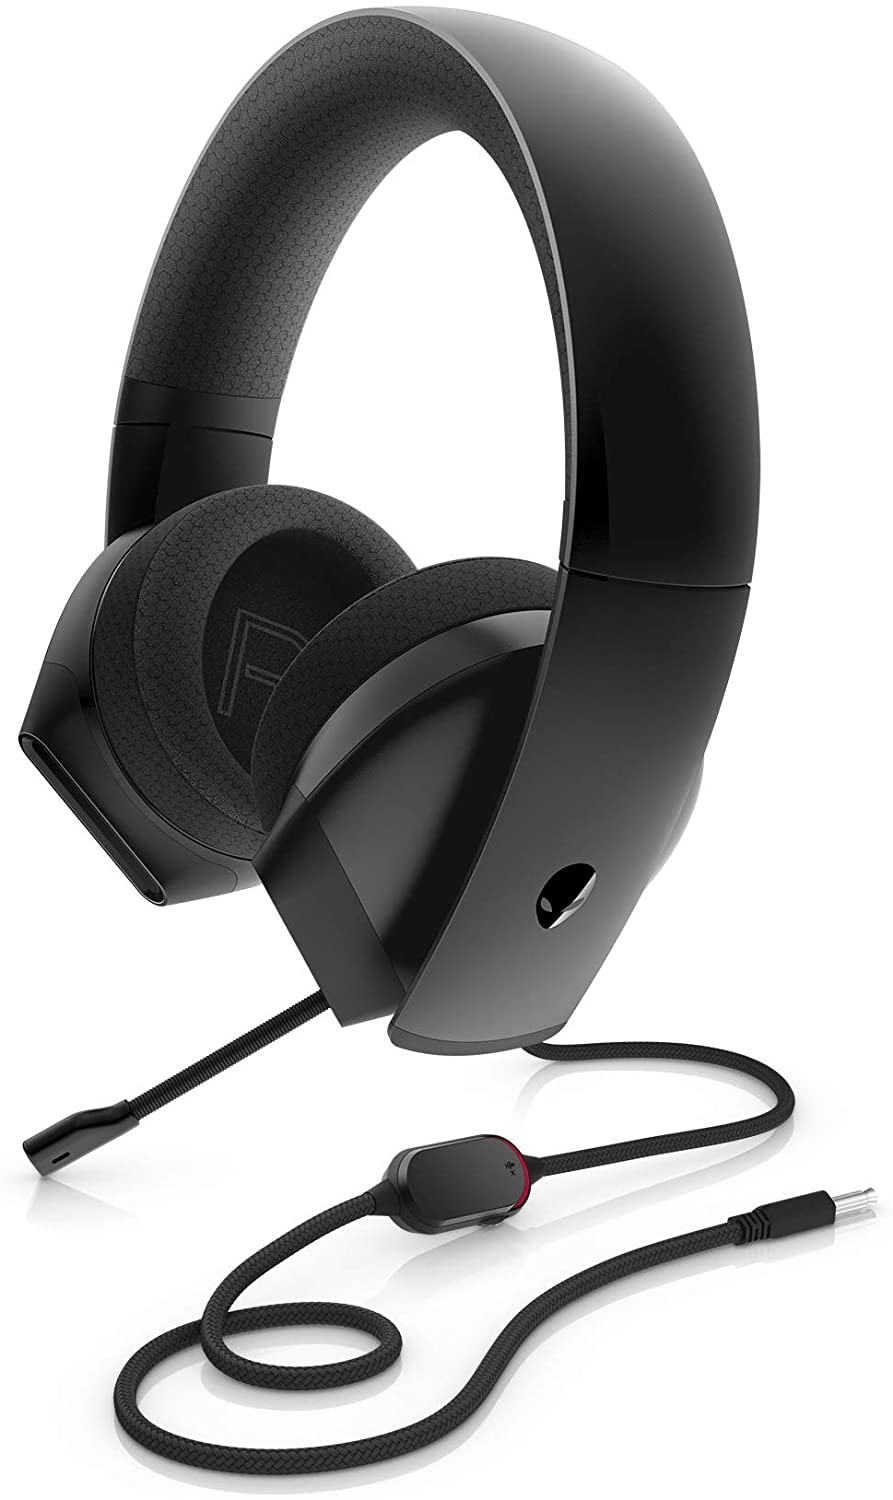 Alienware 310H Gaming Headset Review